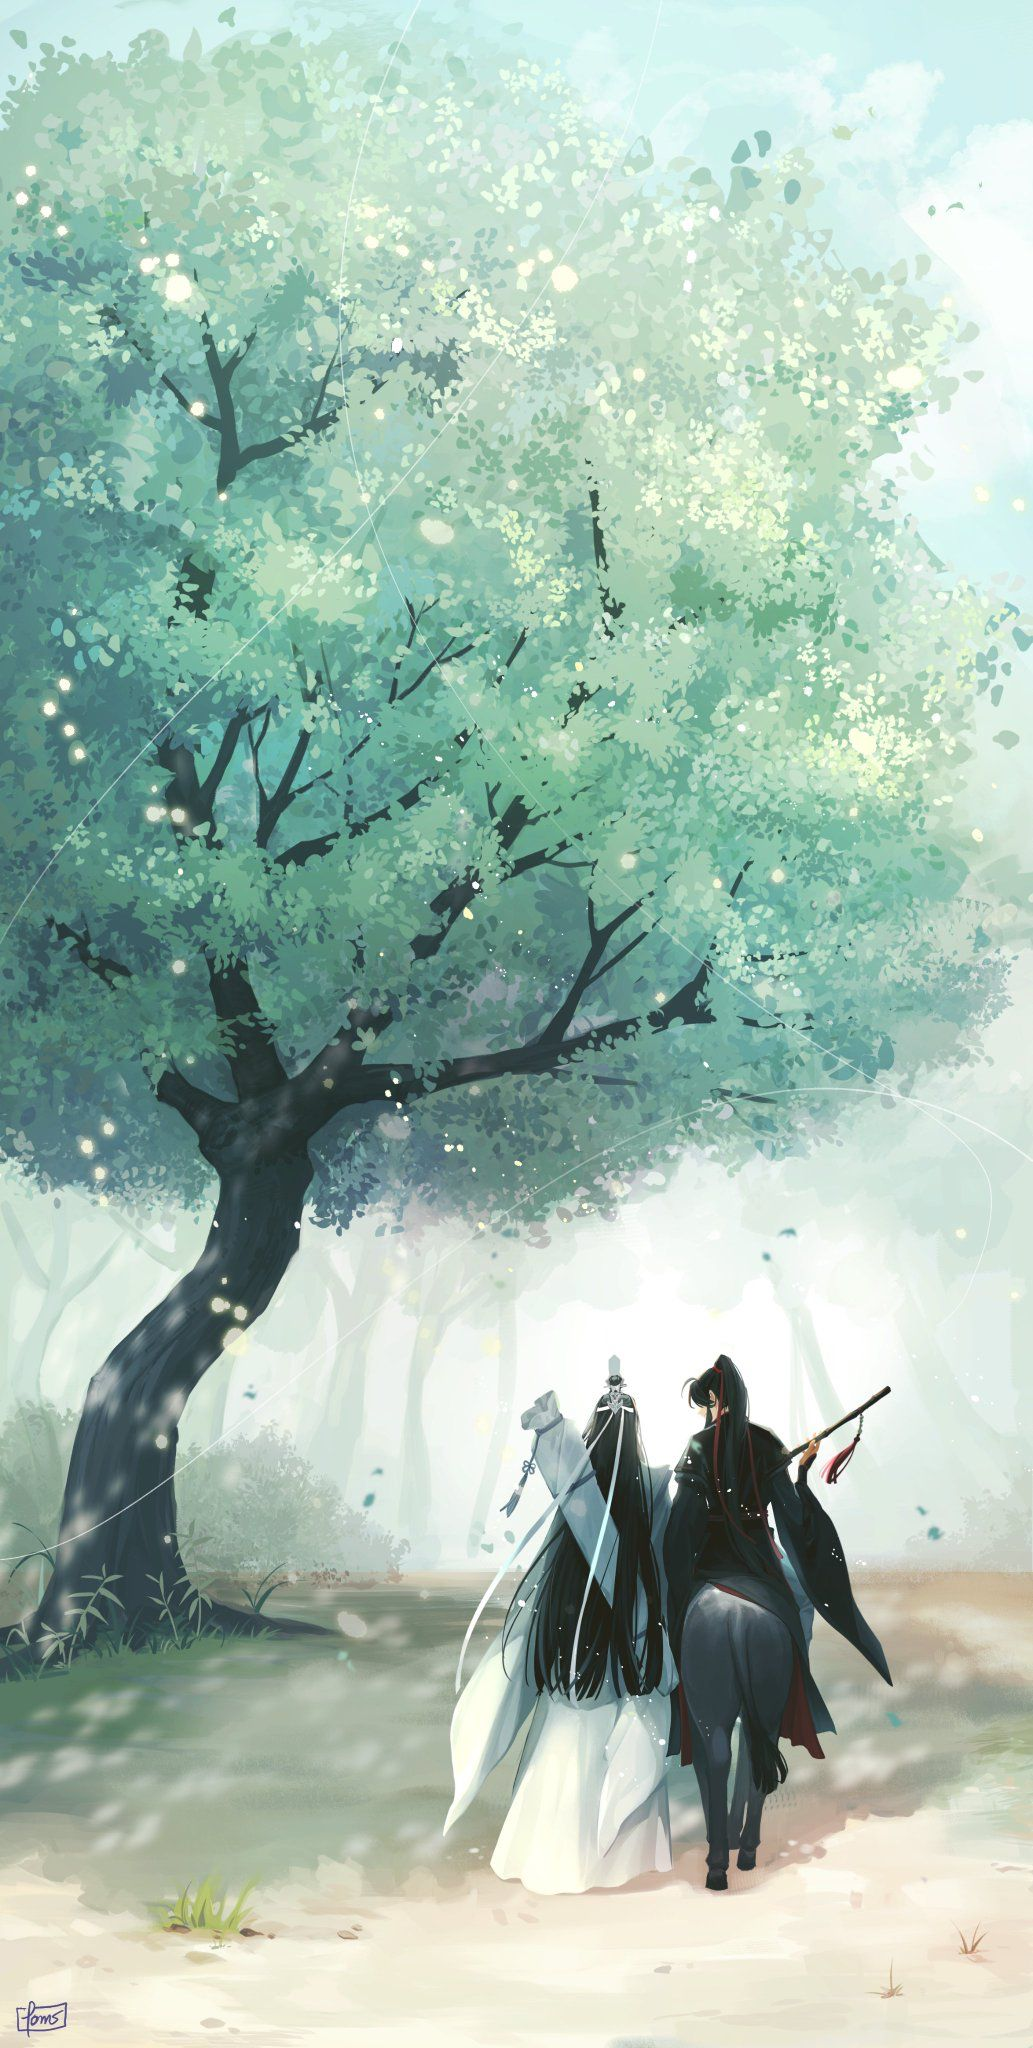 Pin By Psycho Fangirl On Mdzs ㅠㅠ In 2020 Scenery Wallpaper Untamed Scenery